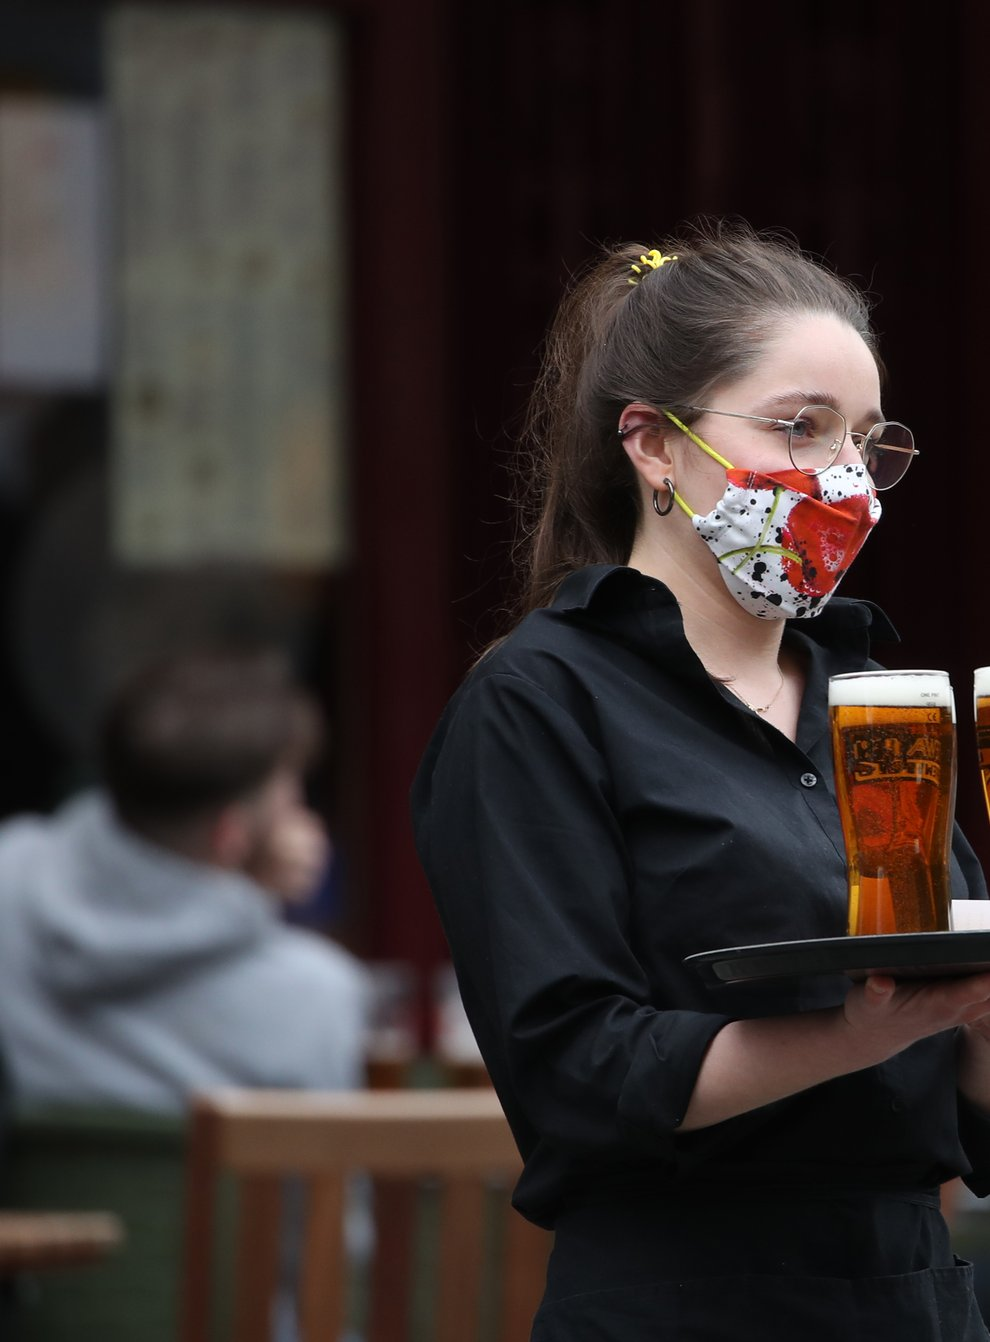 Pub staff returned to work in April as restrictions eased